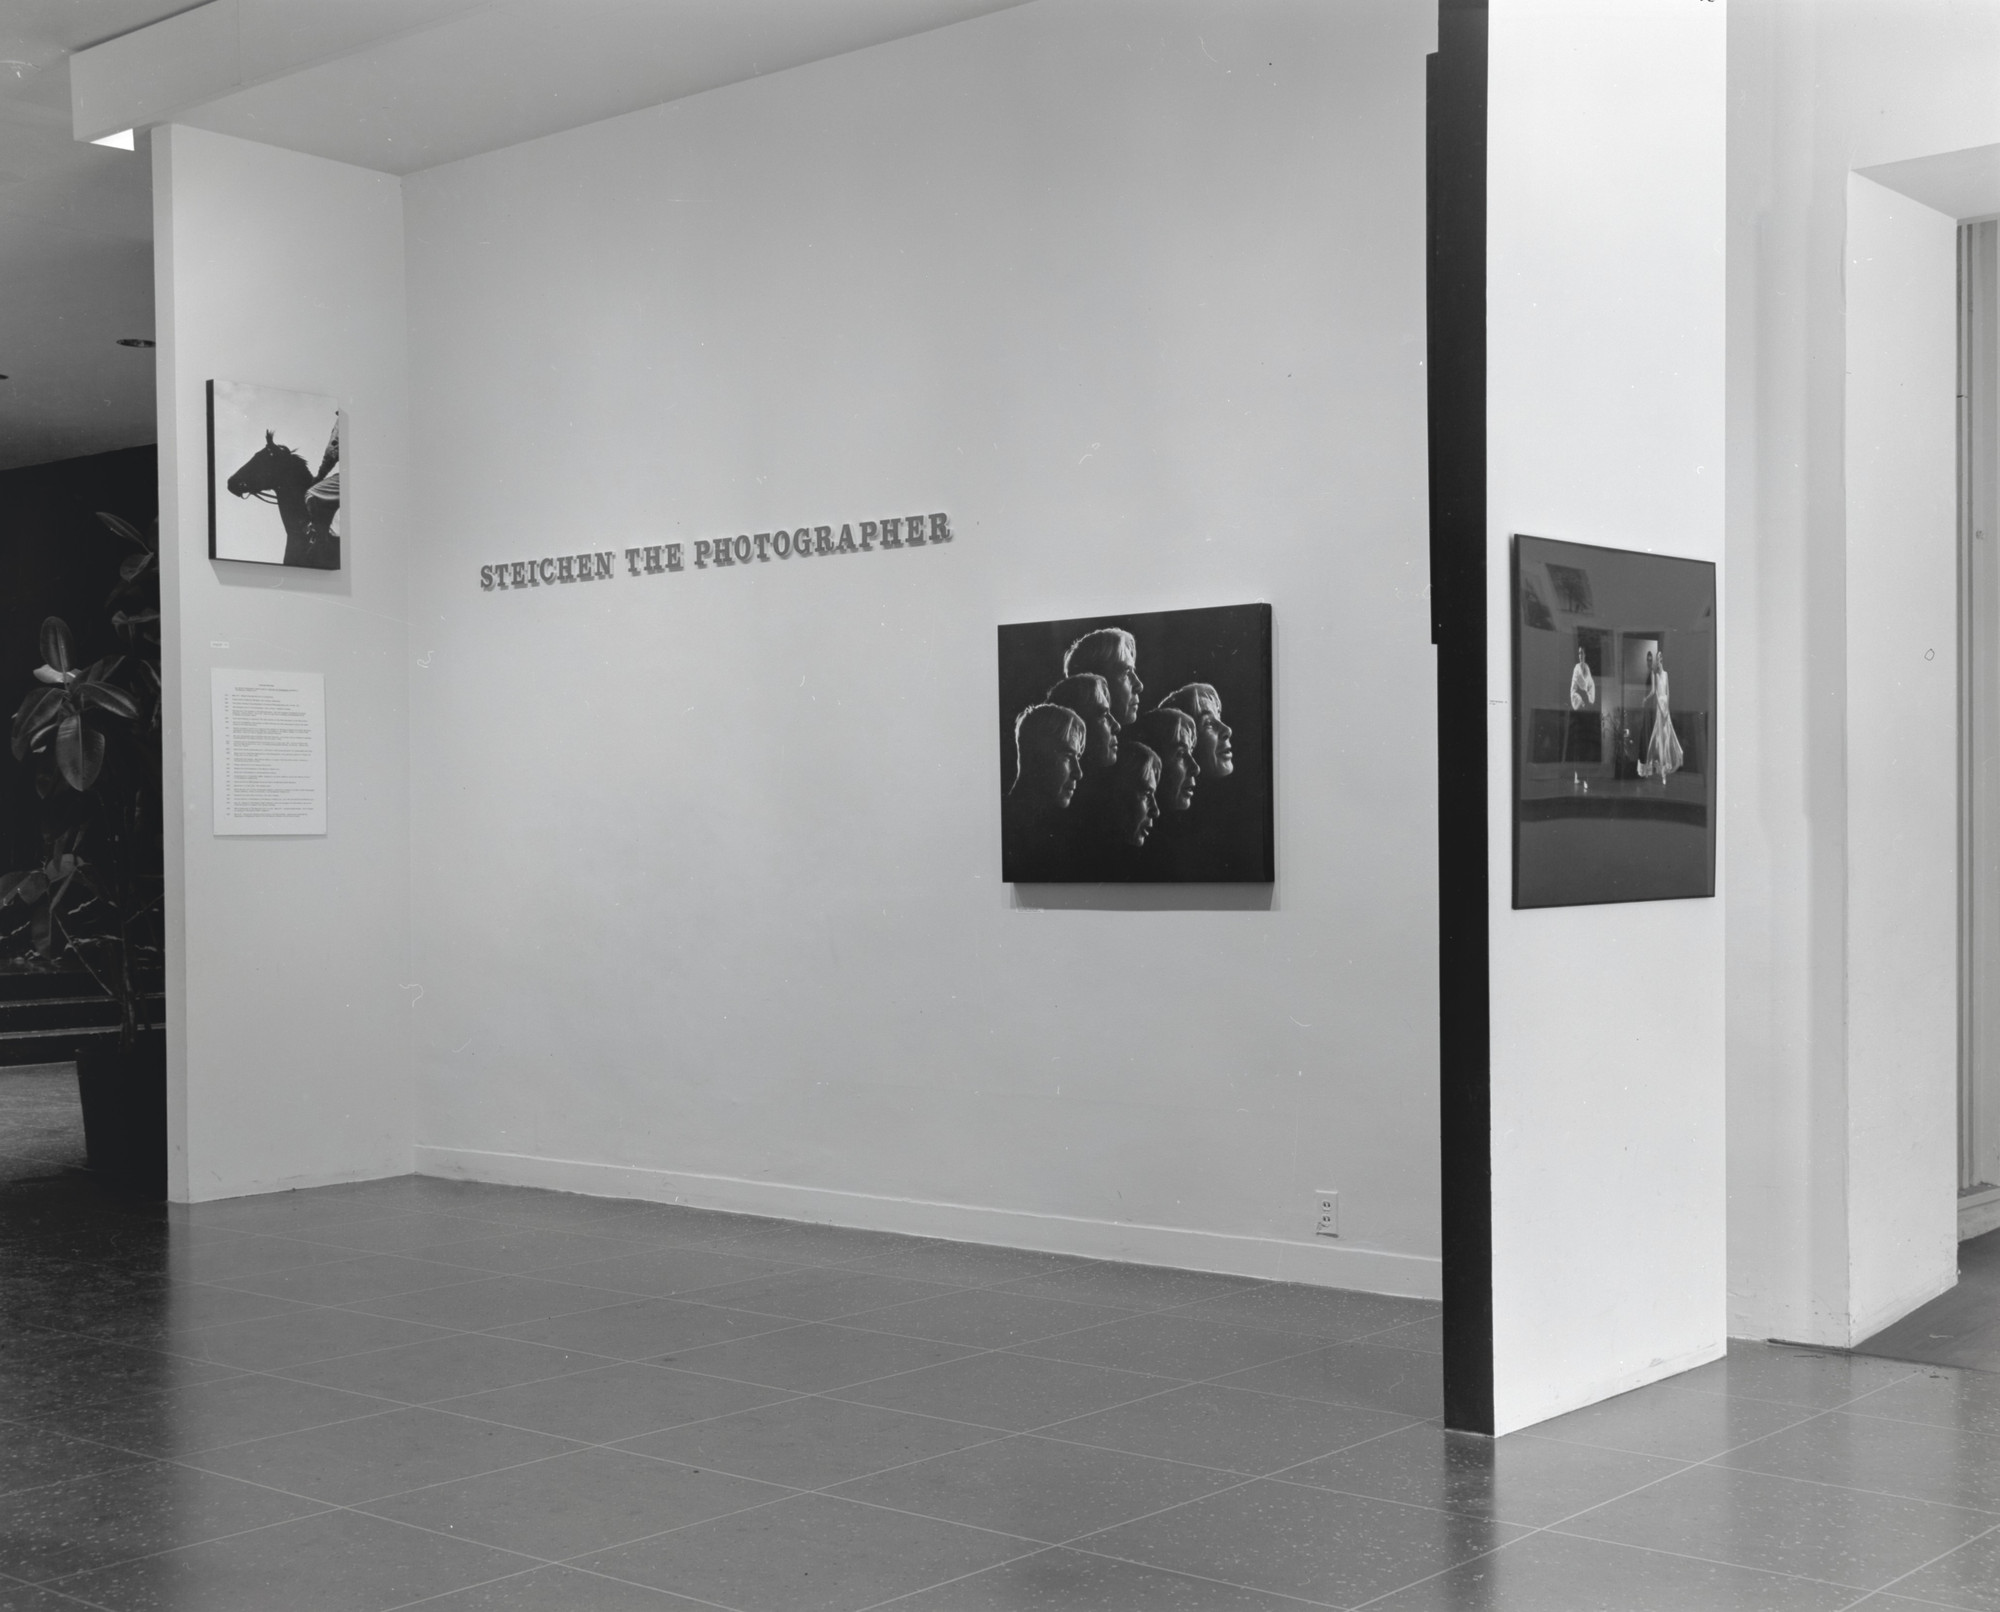 "Installation view of the exhibition, ""Steichen the Photographer"" March 28, 1961–May 30, 1961. Photographic Archive. The Museum of Modern Art Archives, New York. IN682.1. Photograph by Rolf Petersen."